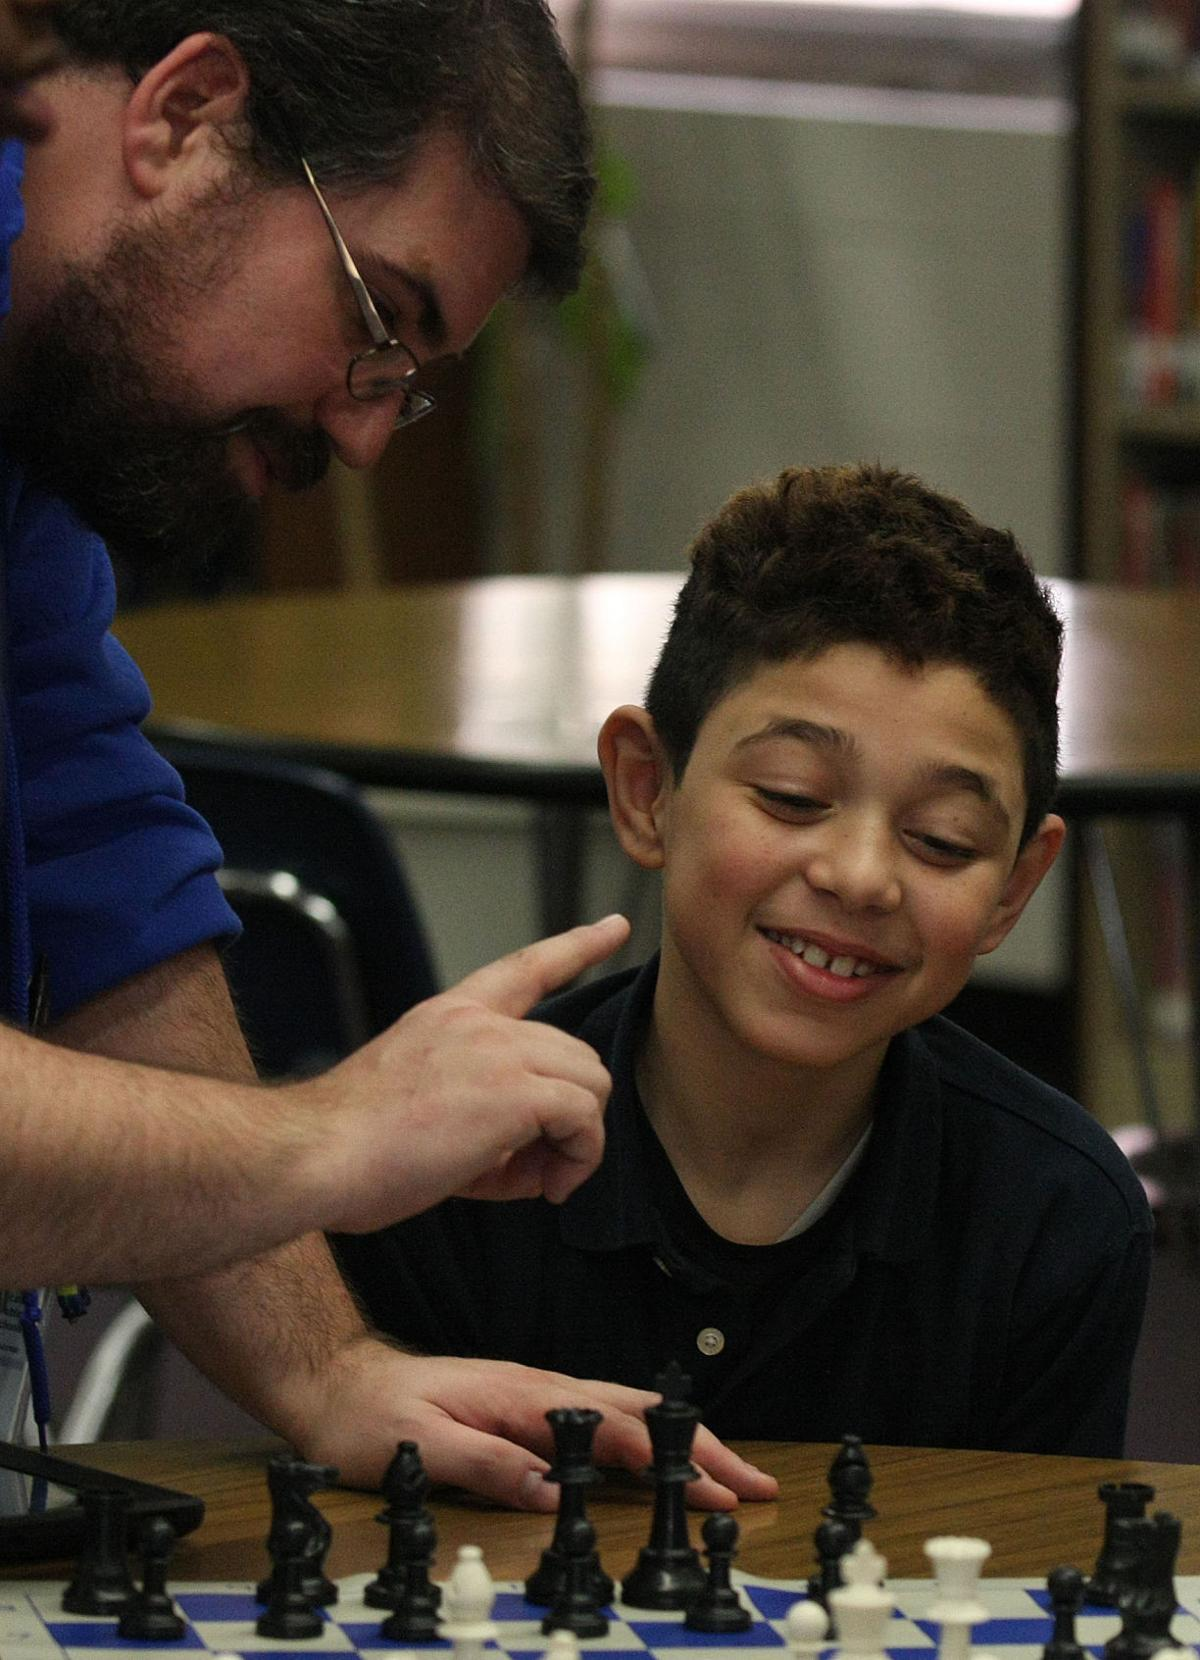 ♟️Check them out: South Shores' chess club competes at national